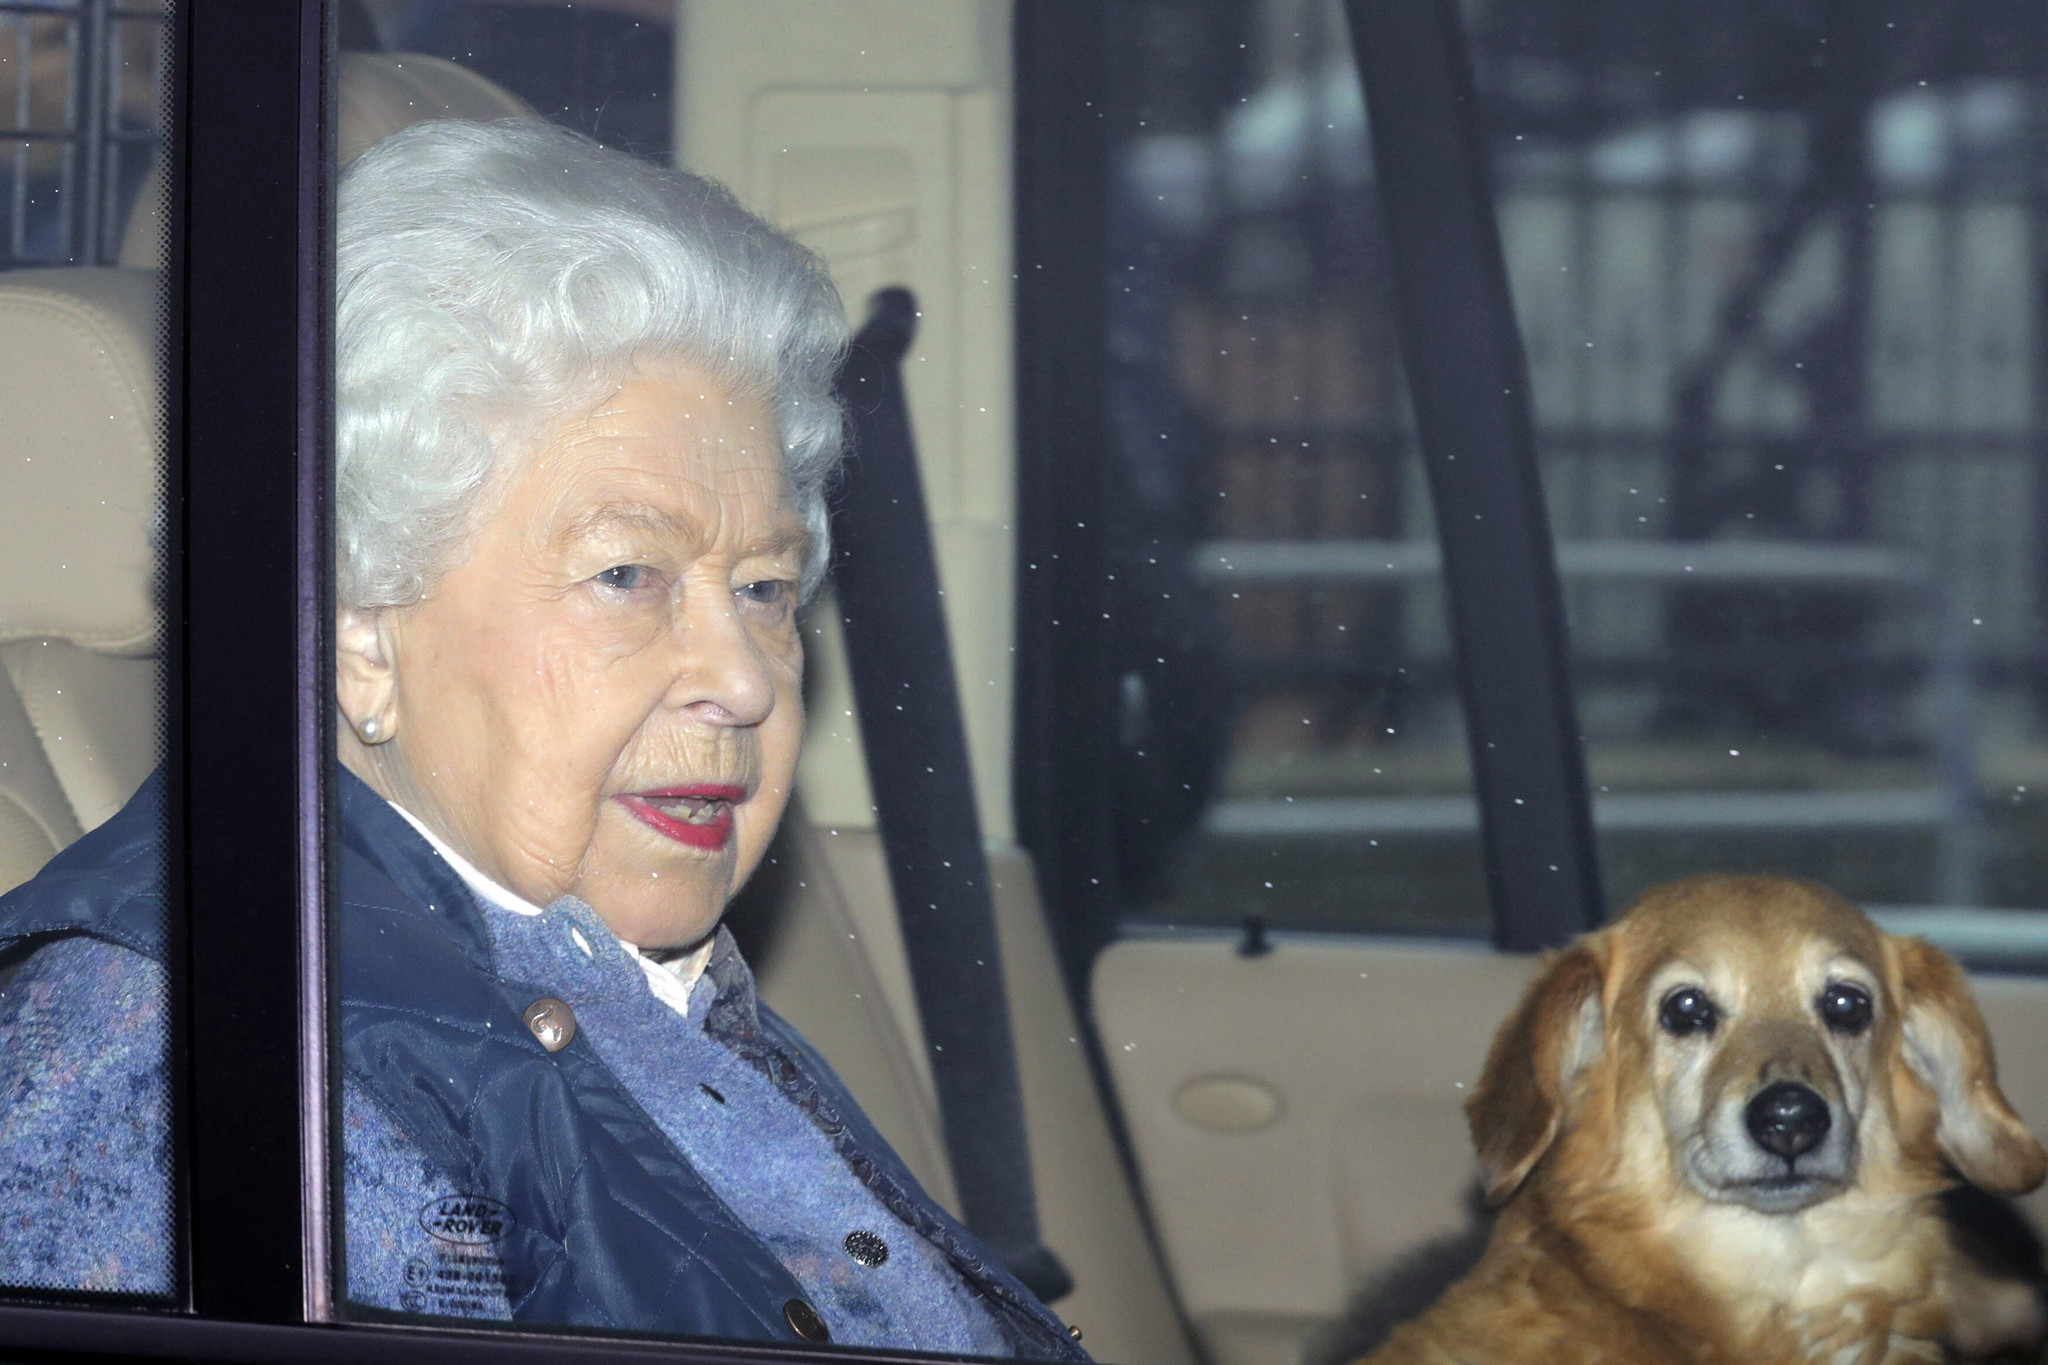 Queen Elizabeth in good health, last saw infected prime minister March 11: Buckingham Palace